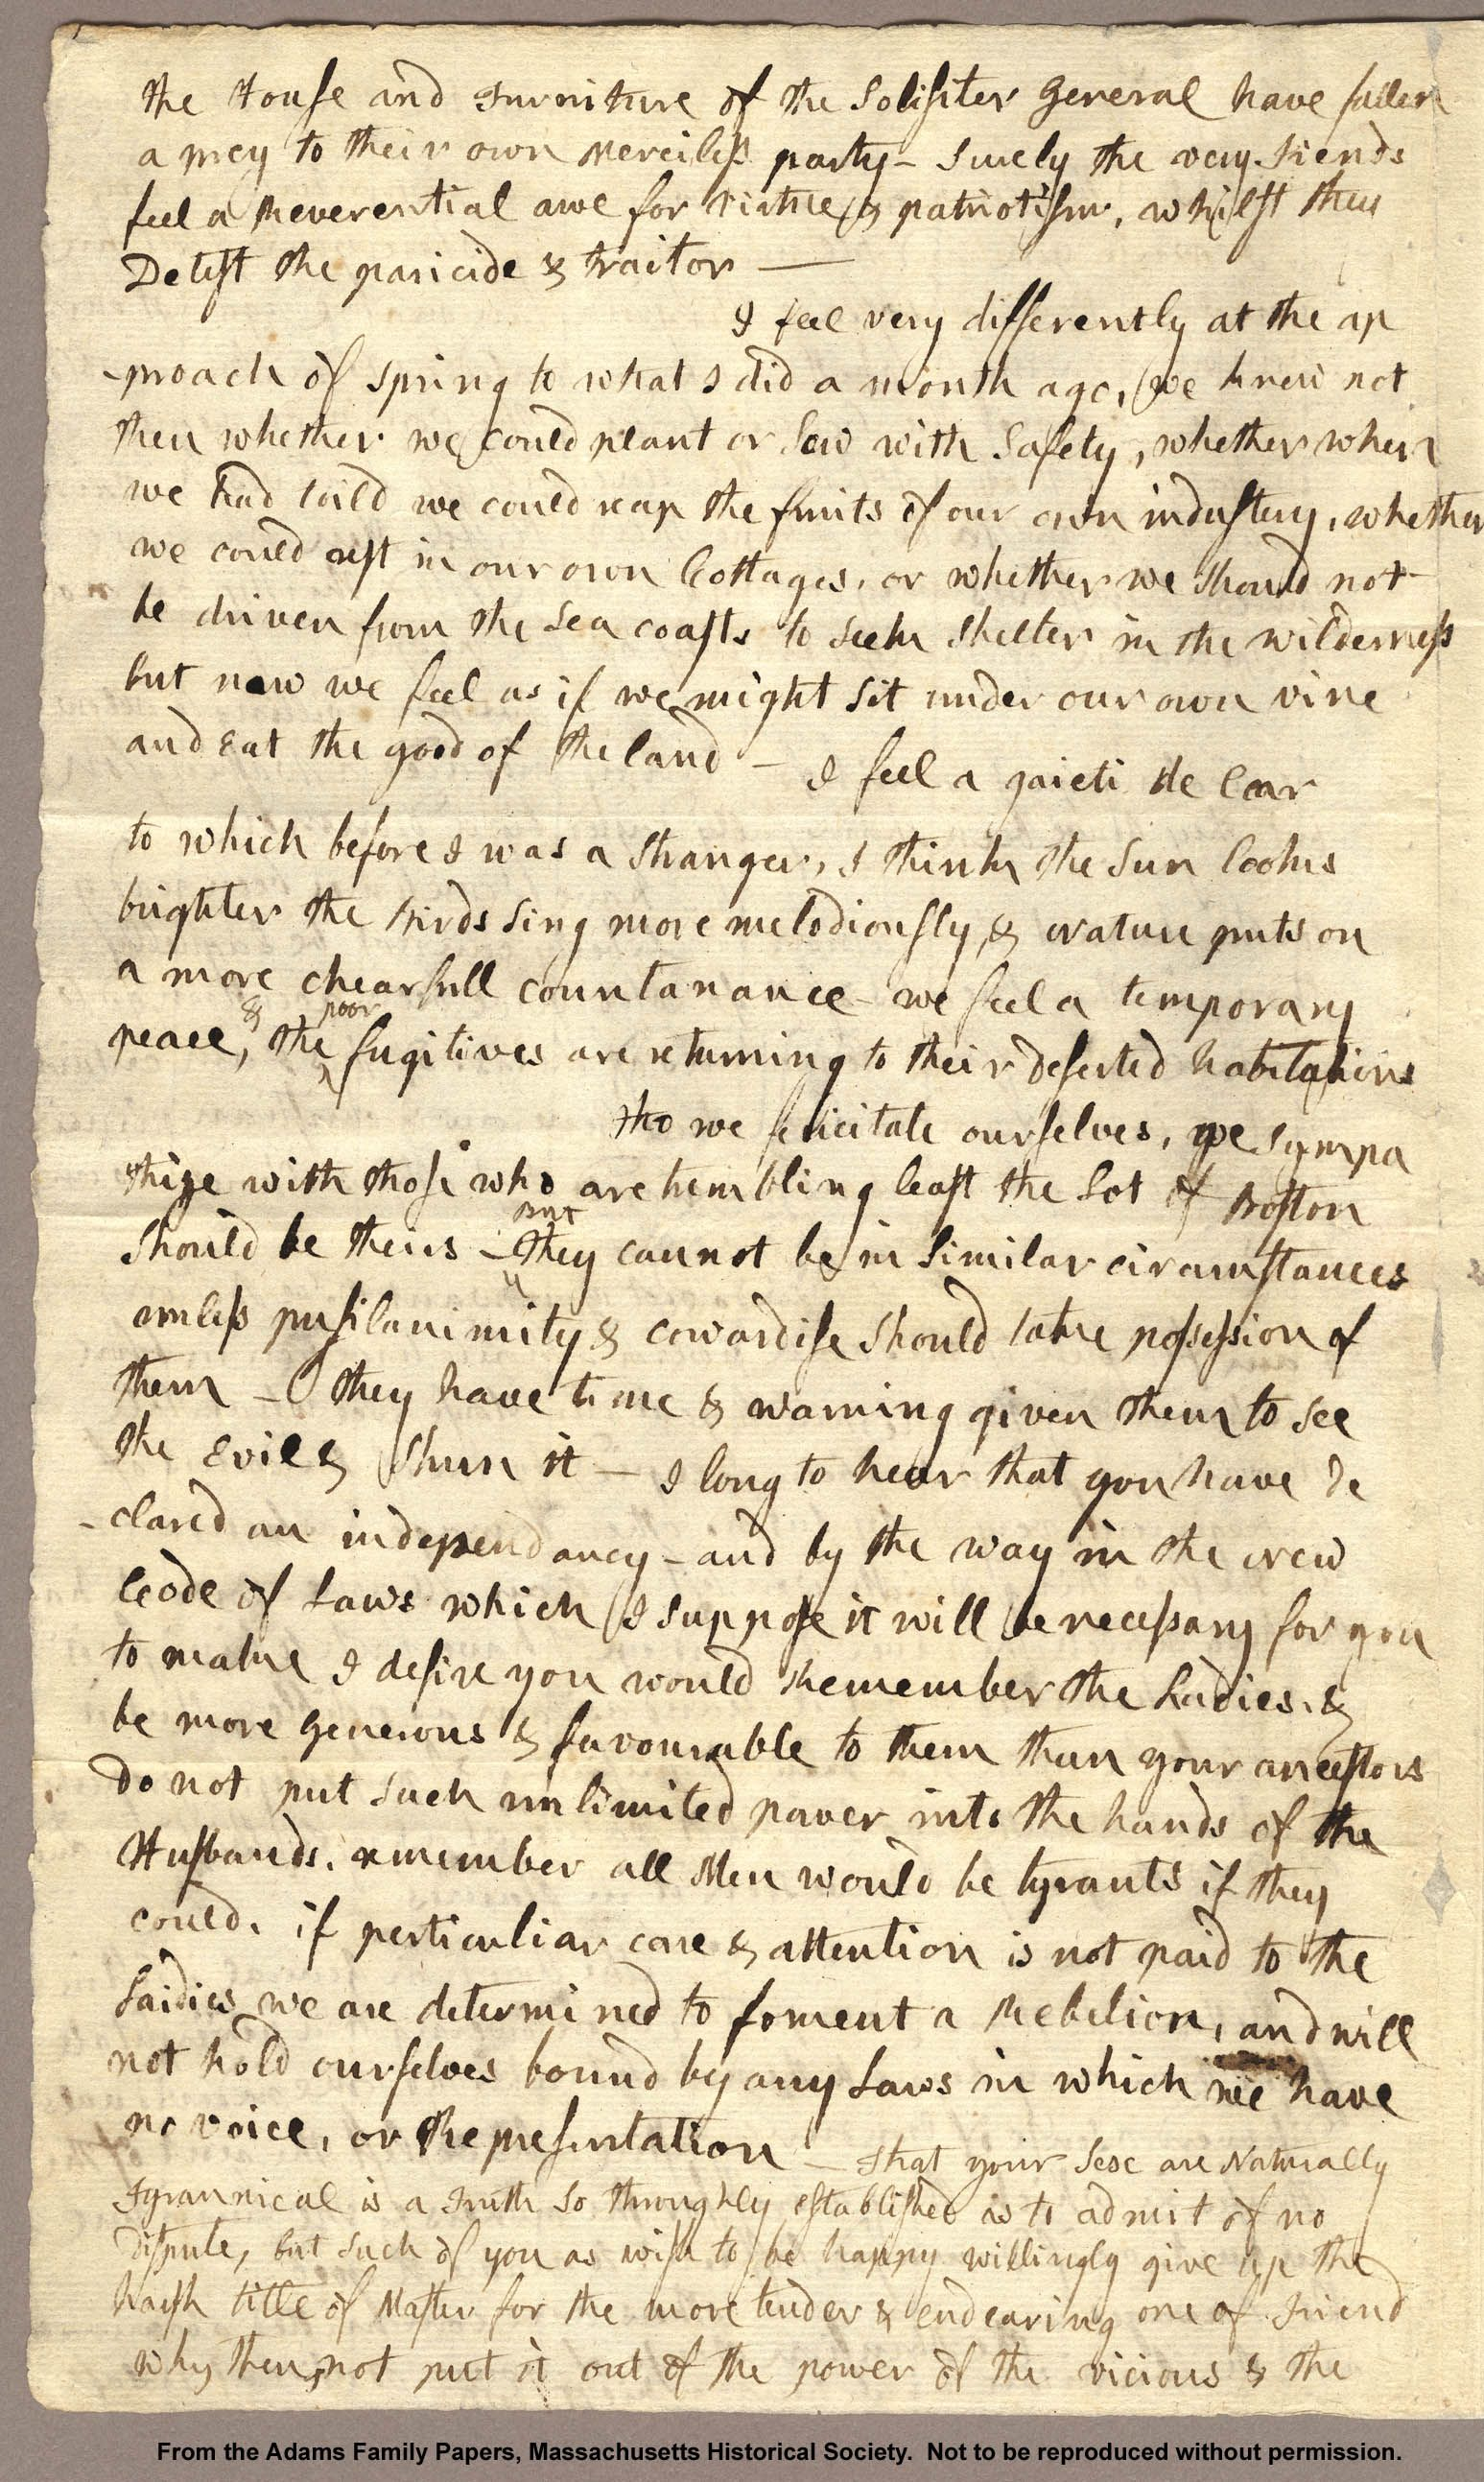 Adams Family Papers Letter from Abigail Adams to John Adams 31